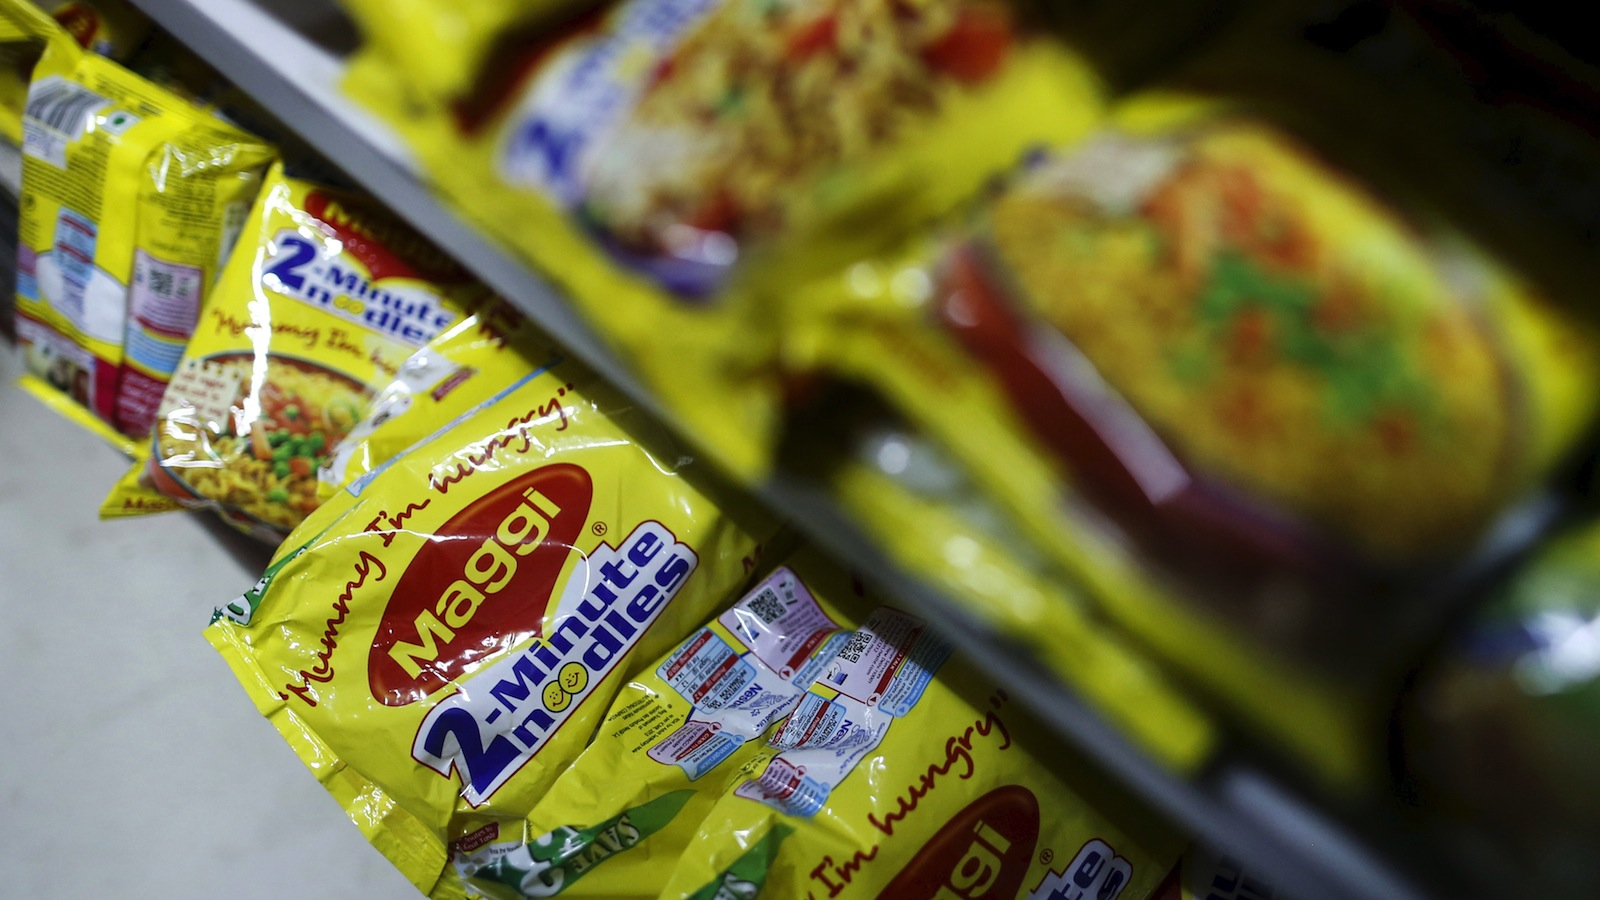 Packets of Nestle's Maggi instant noodles are seen on display at a grocery store in Mumbai, India, June 3, 2015. India's food minister on Wednesday ordered safety checks on Nestle India's Maggi instant noodles after regional food inspectors said the test batches of the popular snack were found to contain dangerous levels of lead.